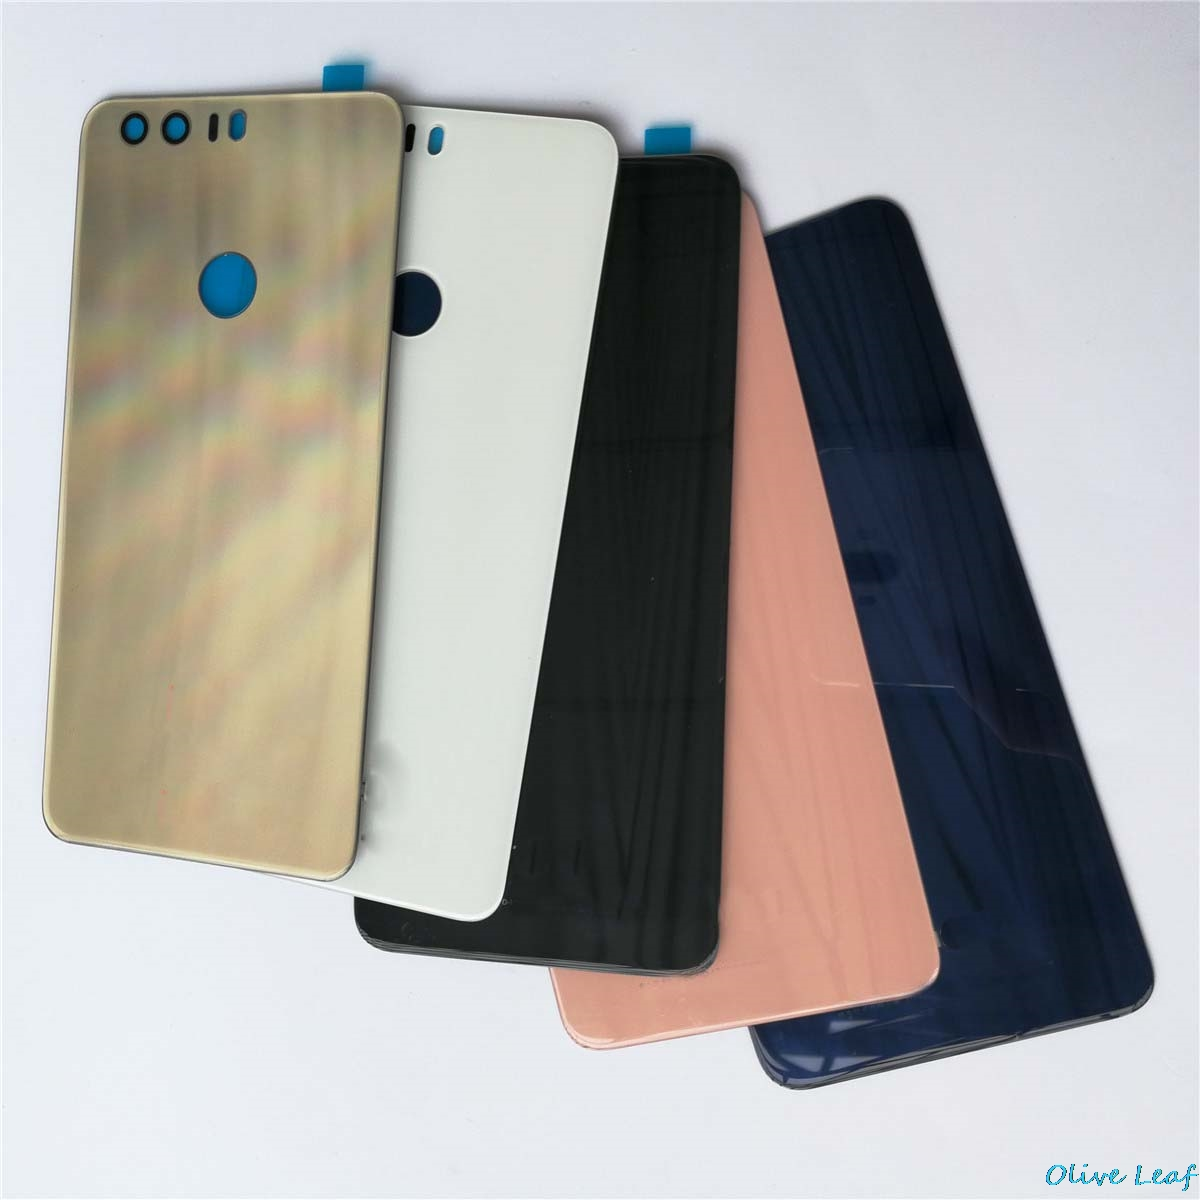 For Huawei Honor 8 Back Glass Door Cover With Adhesive Sticker Parts Replacement Original Rear Battery Cover Housing